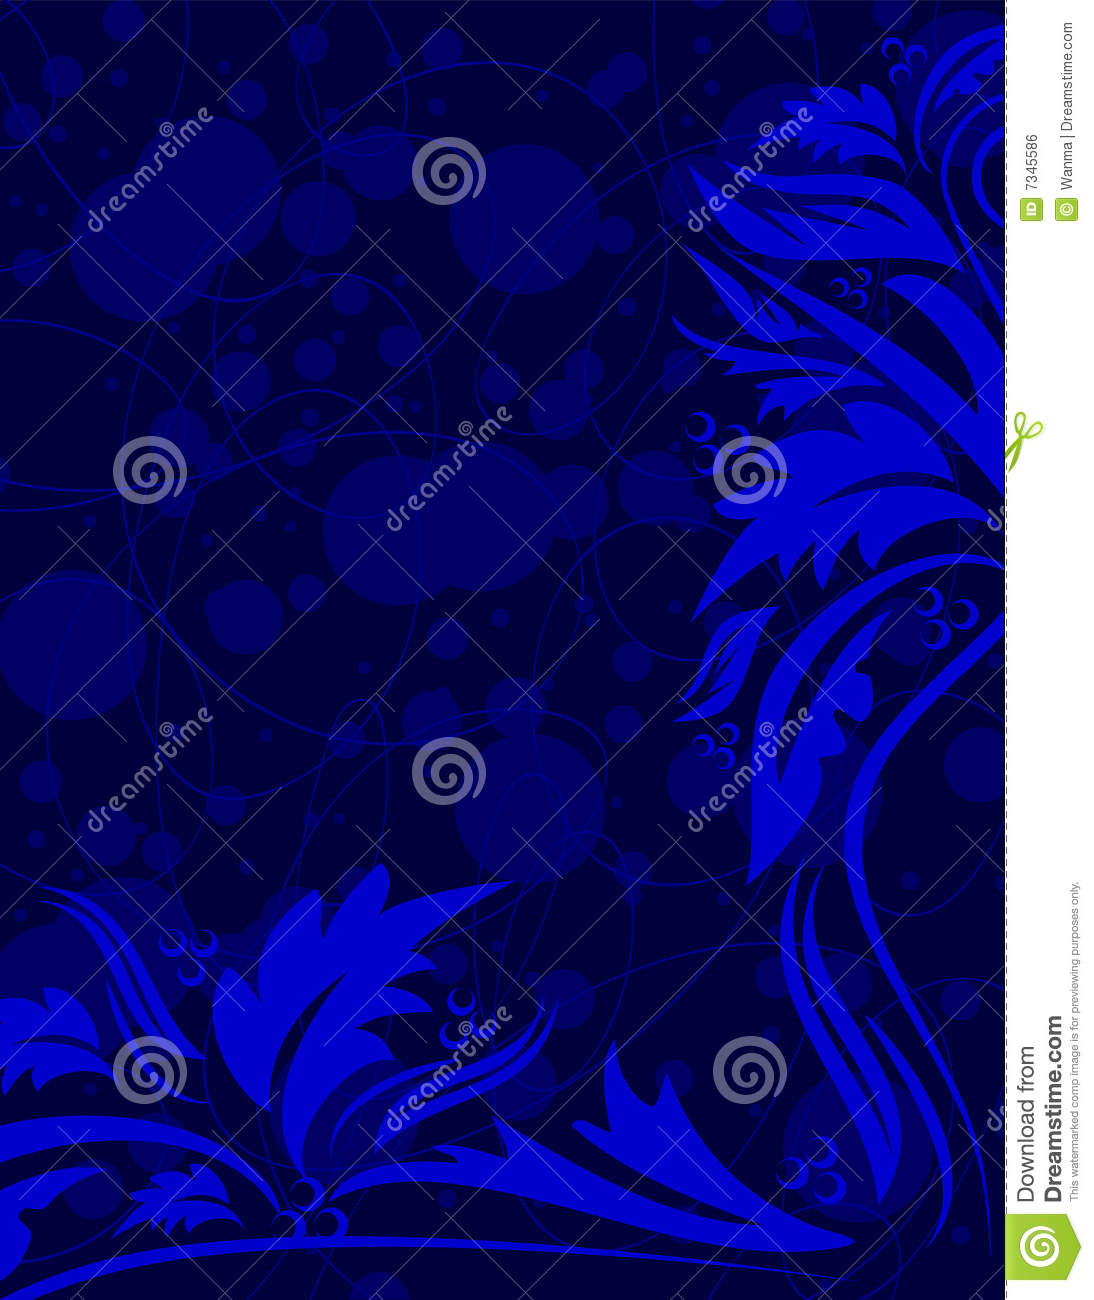 Navy Blue Floral Background Royalty Free Stock Image - Image: 7345586